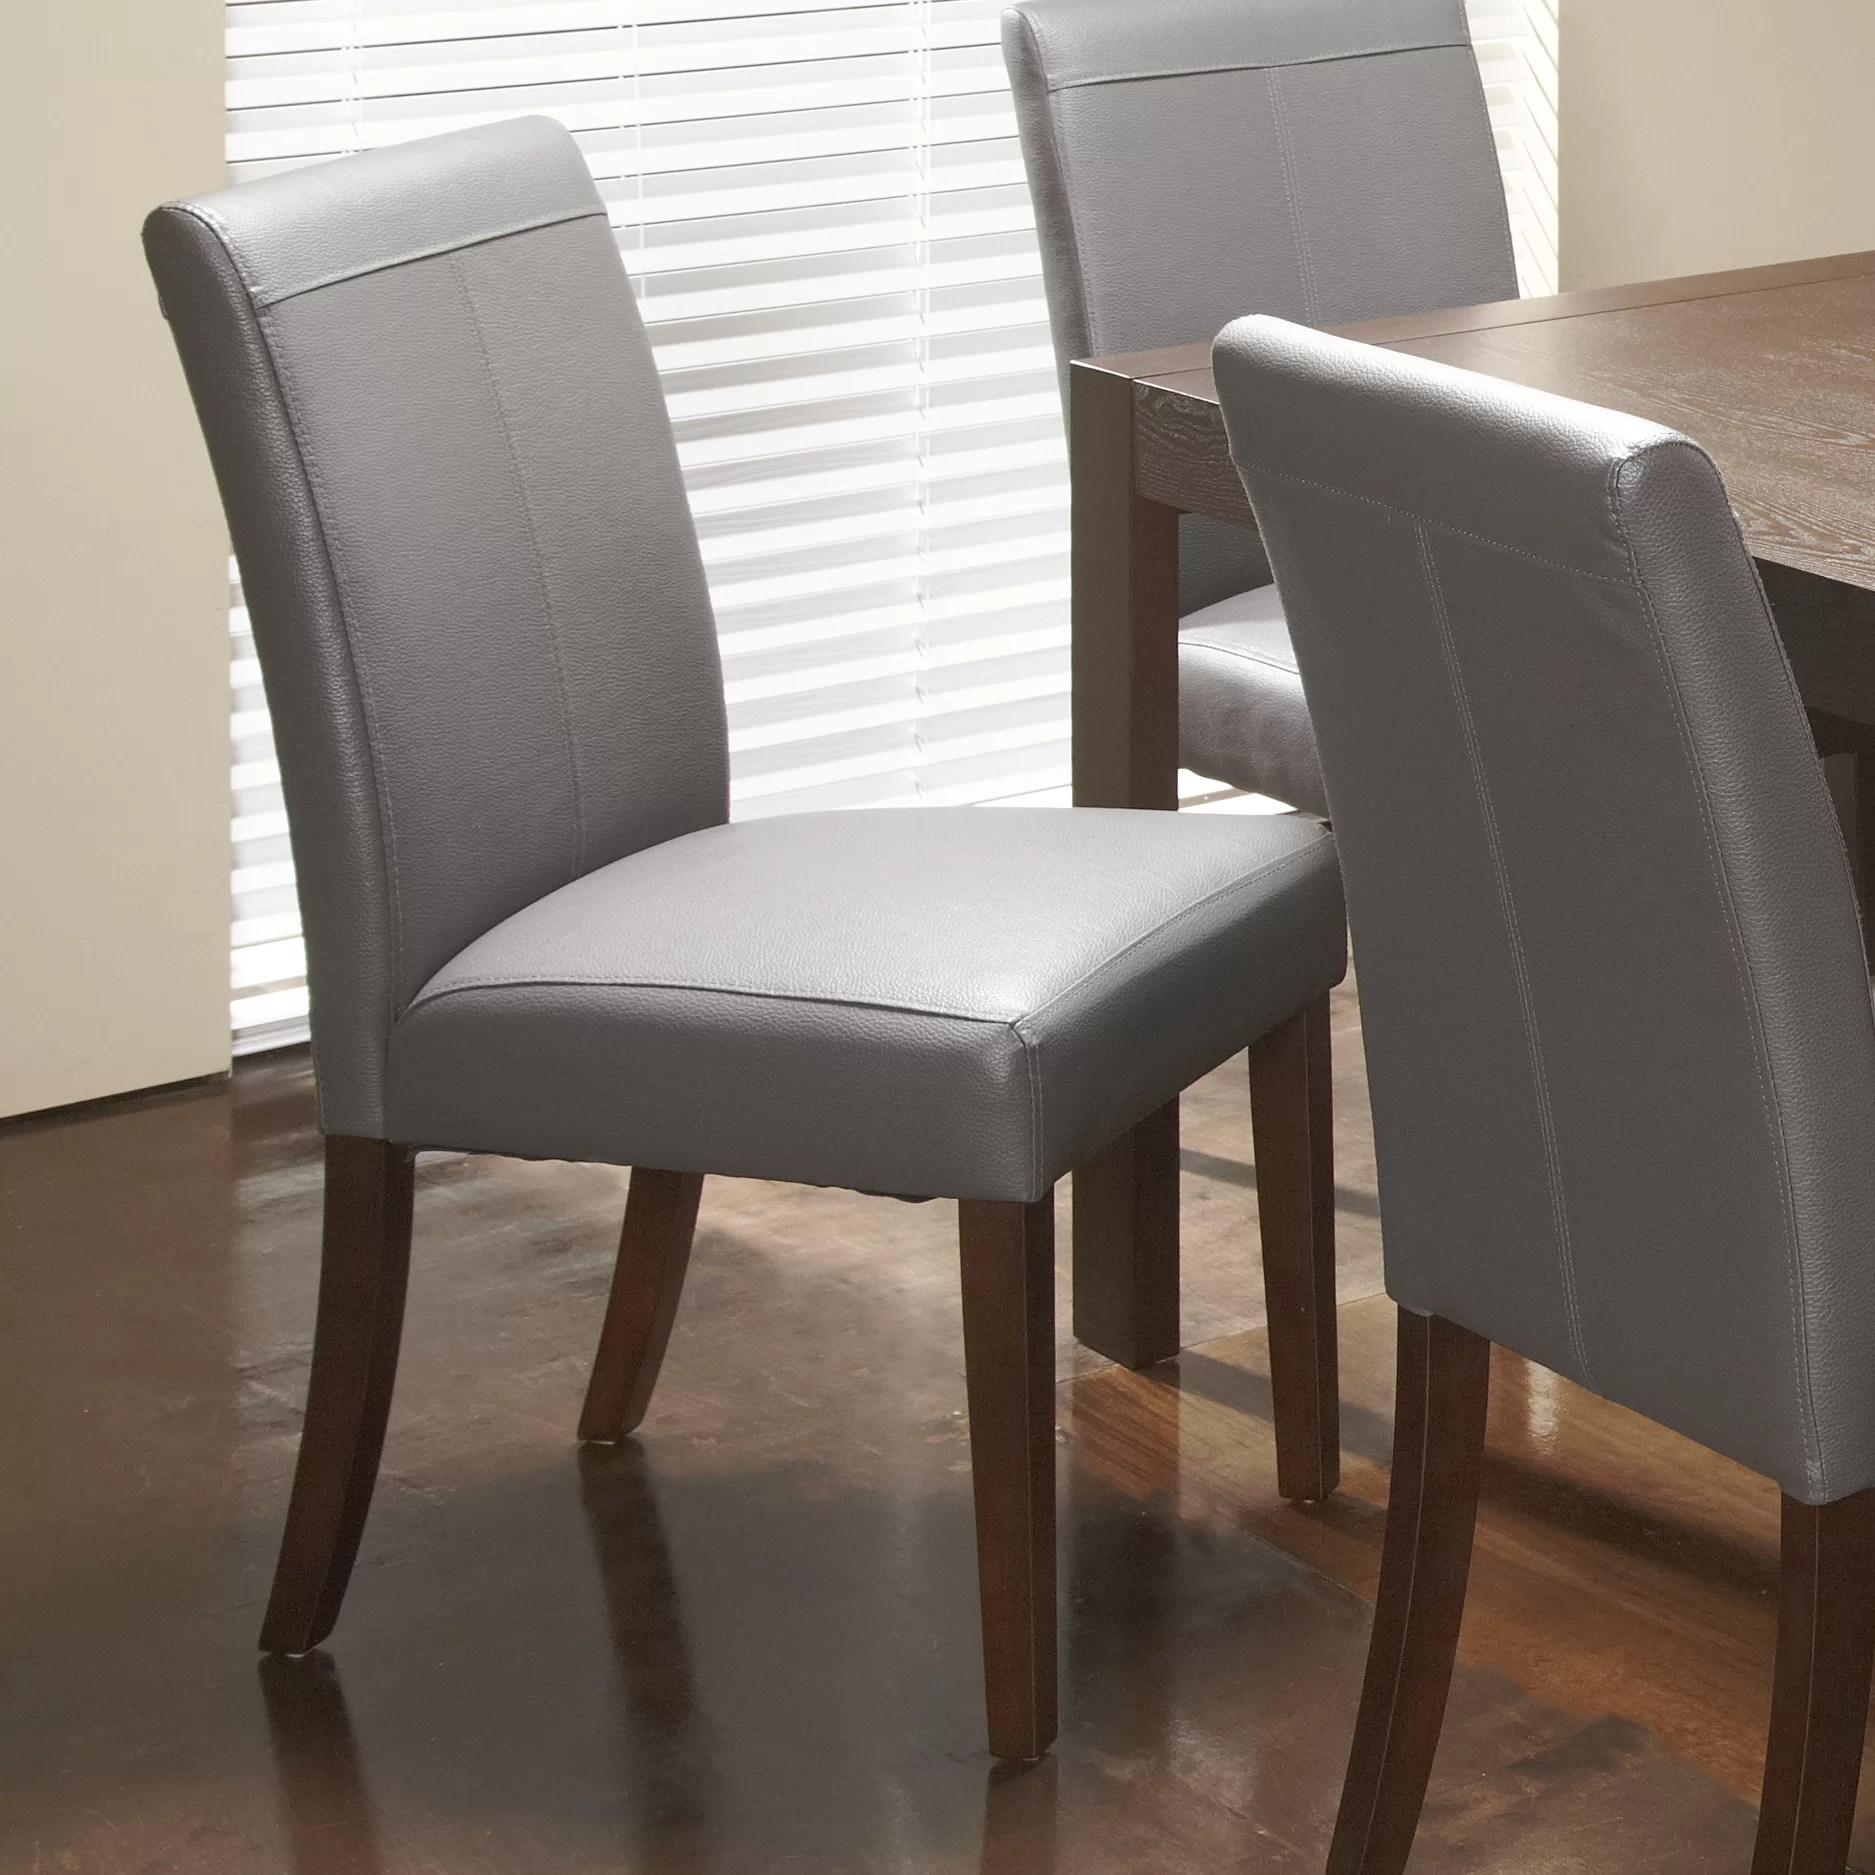 real leather chairs extra large potty chair chateau imports royal genuine upholstered dining